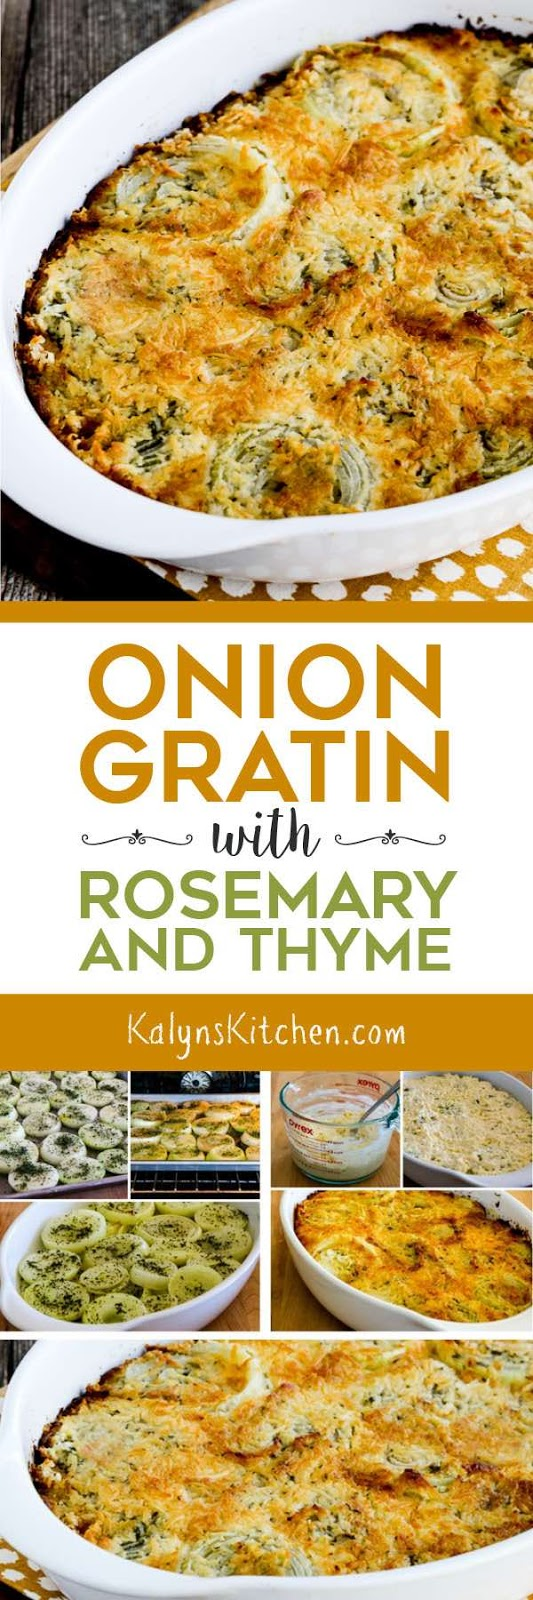 Onion Gratin with Rosemary and Thyme - Kalyn's Kitchen